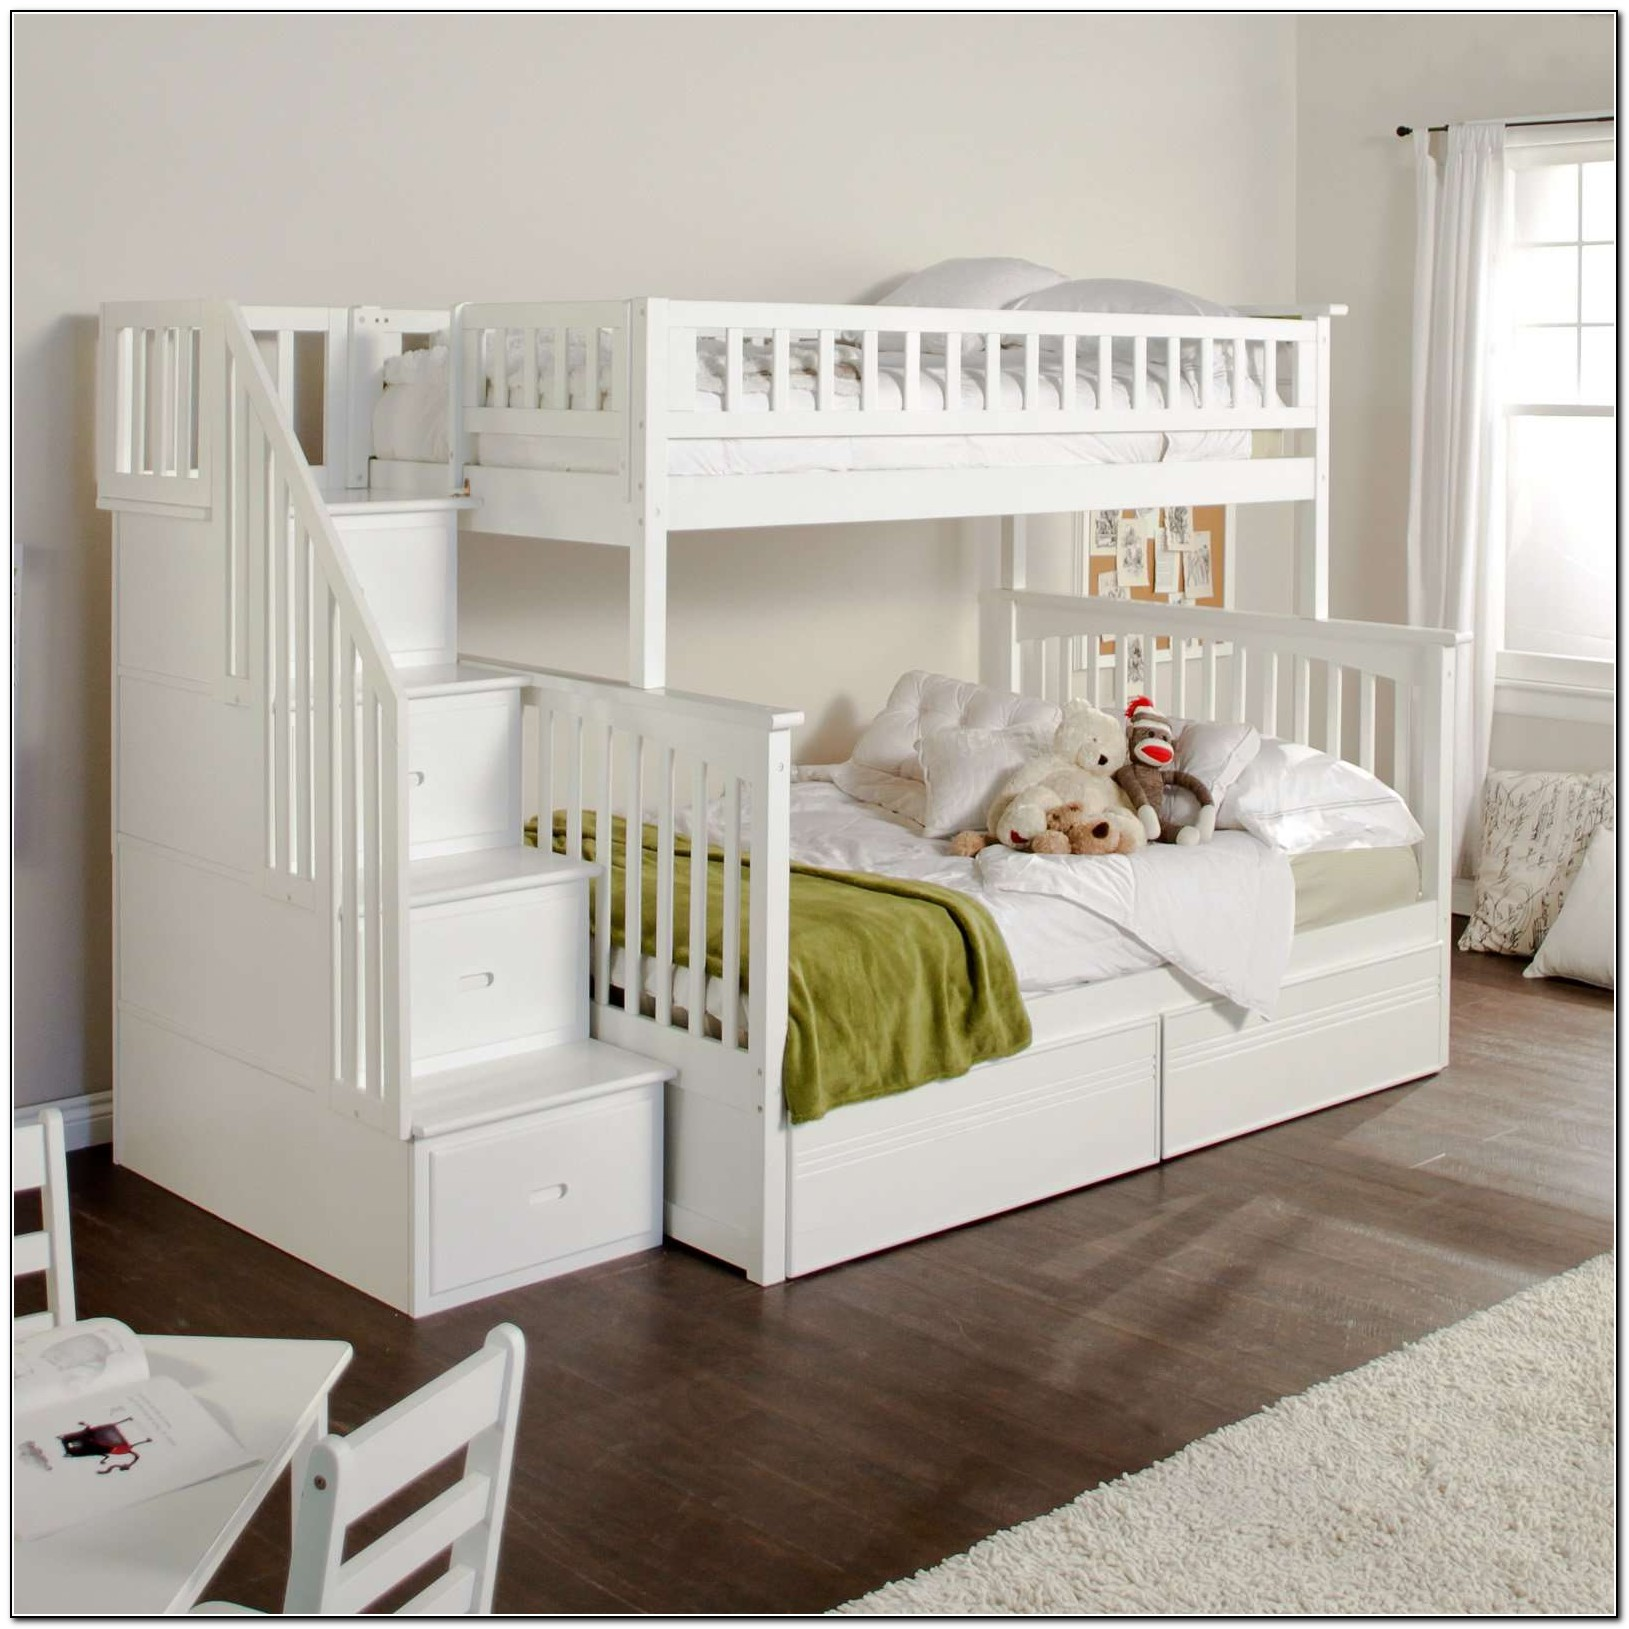 Ikea Kids Beds Australia Beds Home Design Ideas - Hochbett Jugendzimmer Ikea